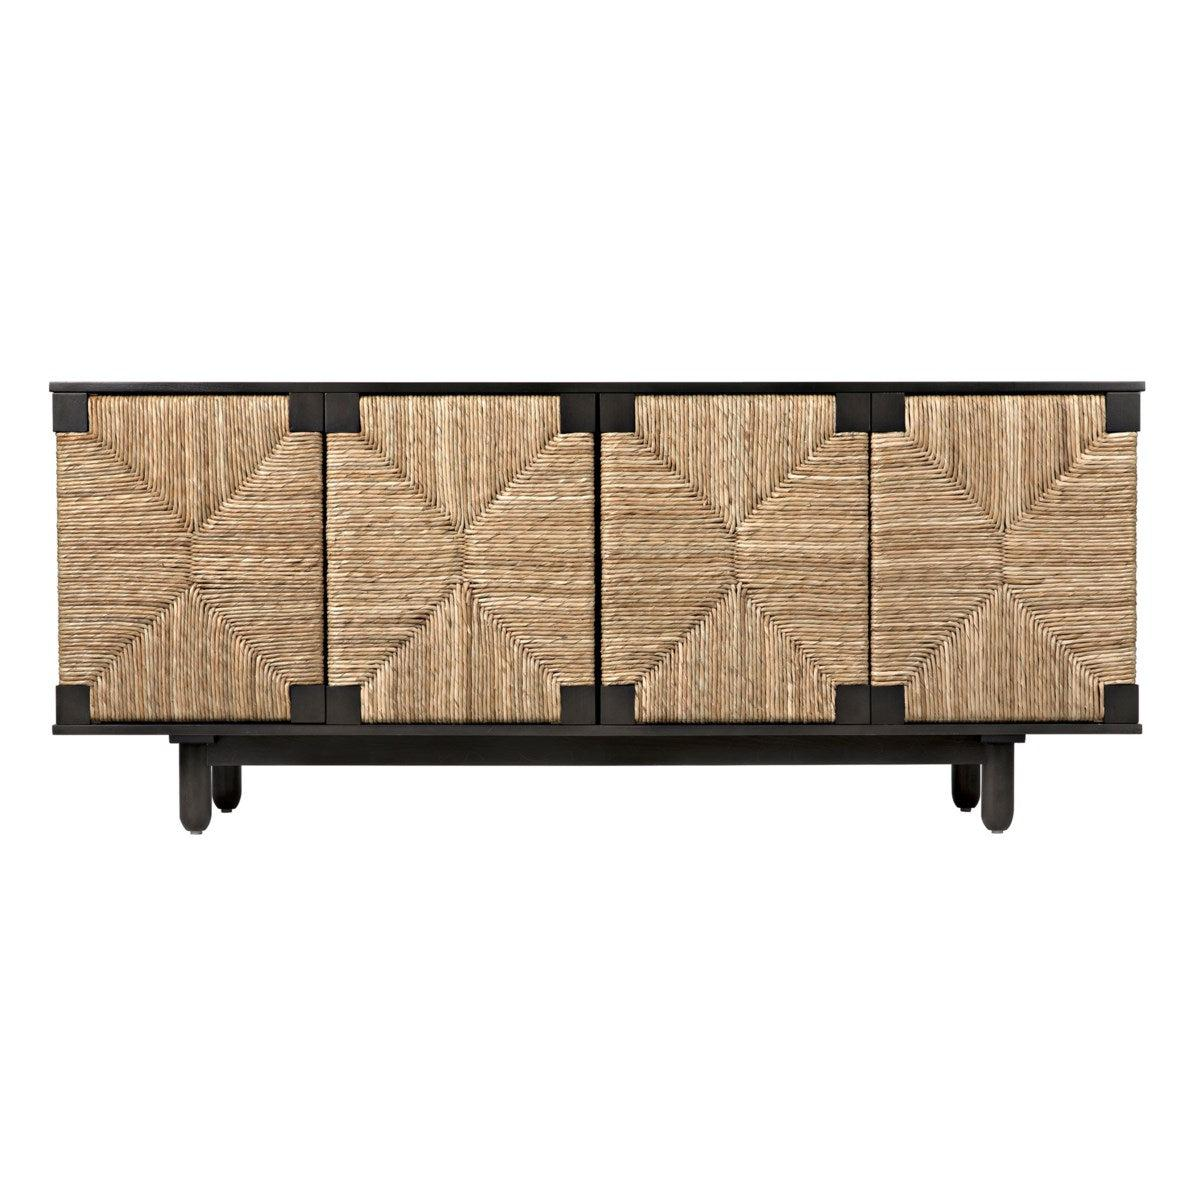 Noir Brook 4 Door Sideboard, Pale